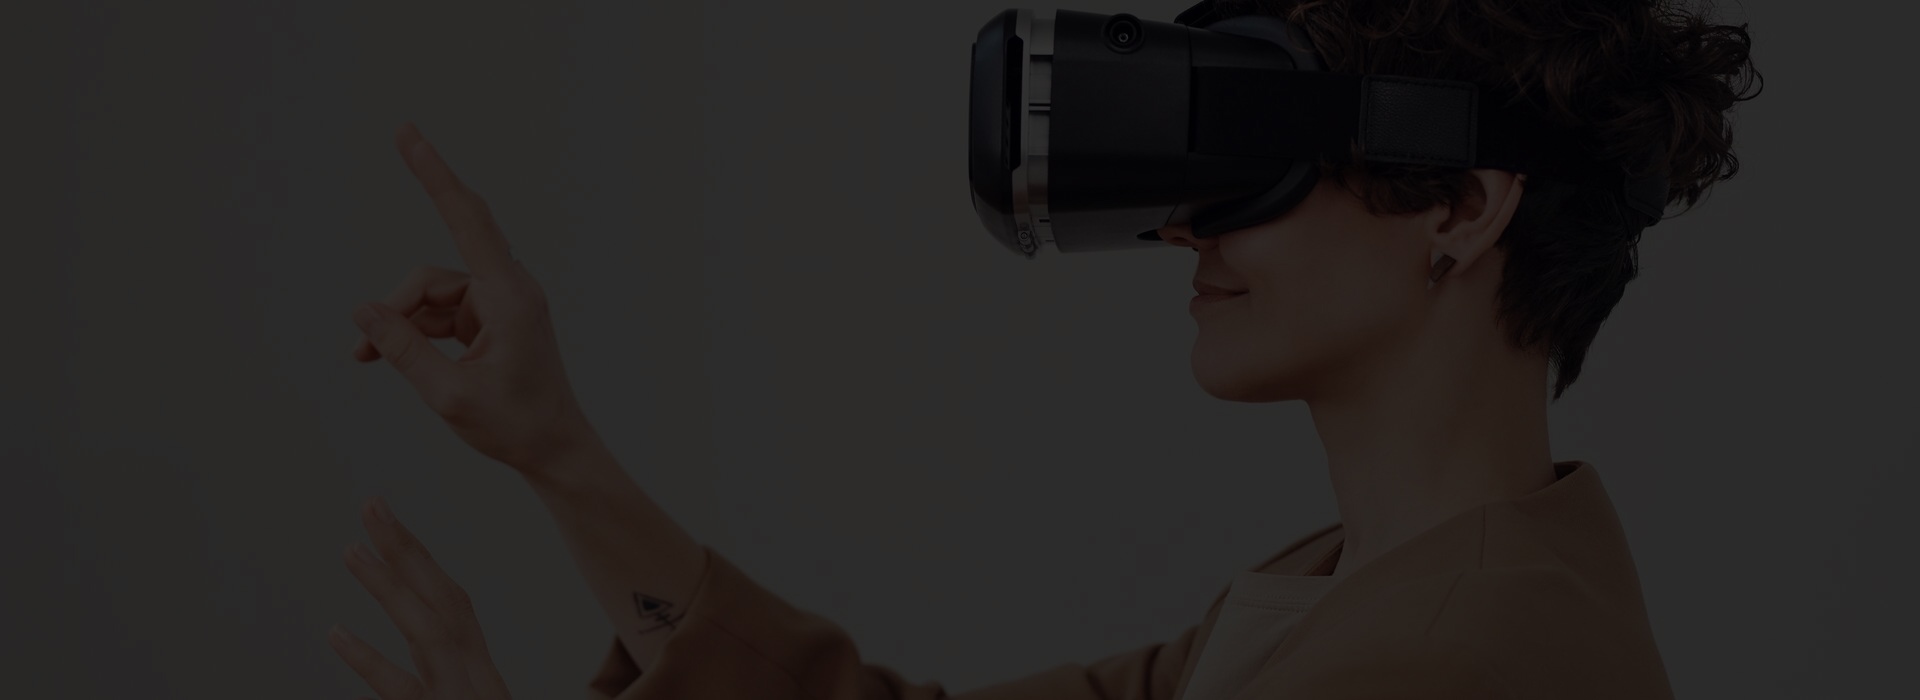 The world of AR / VR technologies